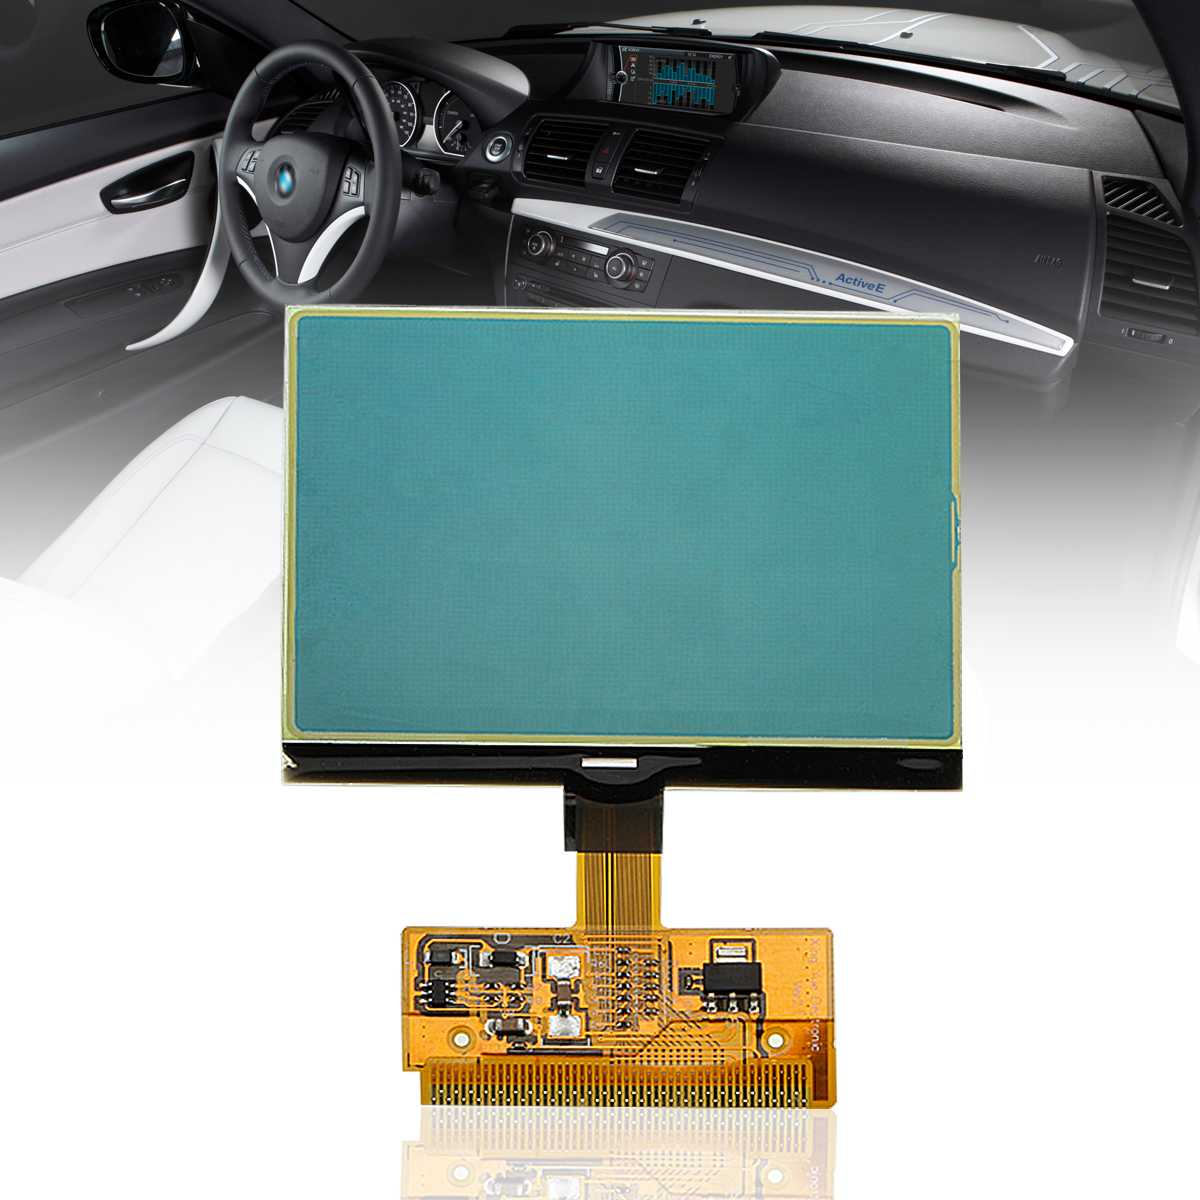 VDO LCD Repair Cluster Speedometer Display Screen For Audi A3 A4 A6 For Volkswagen For VW For Passat For Seat New